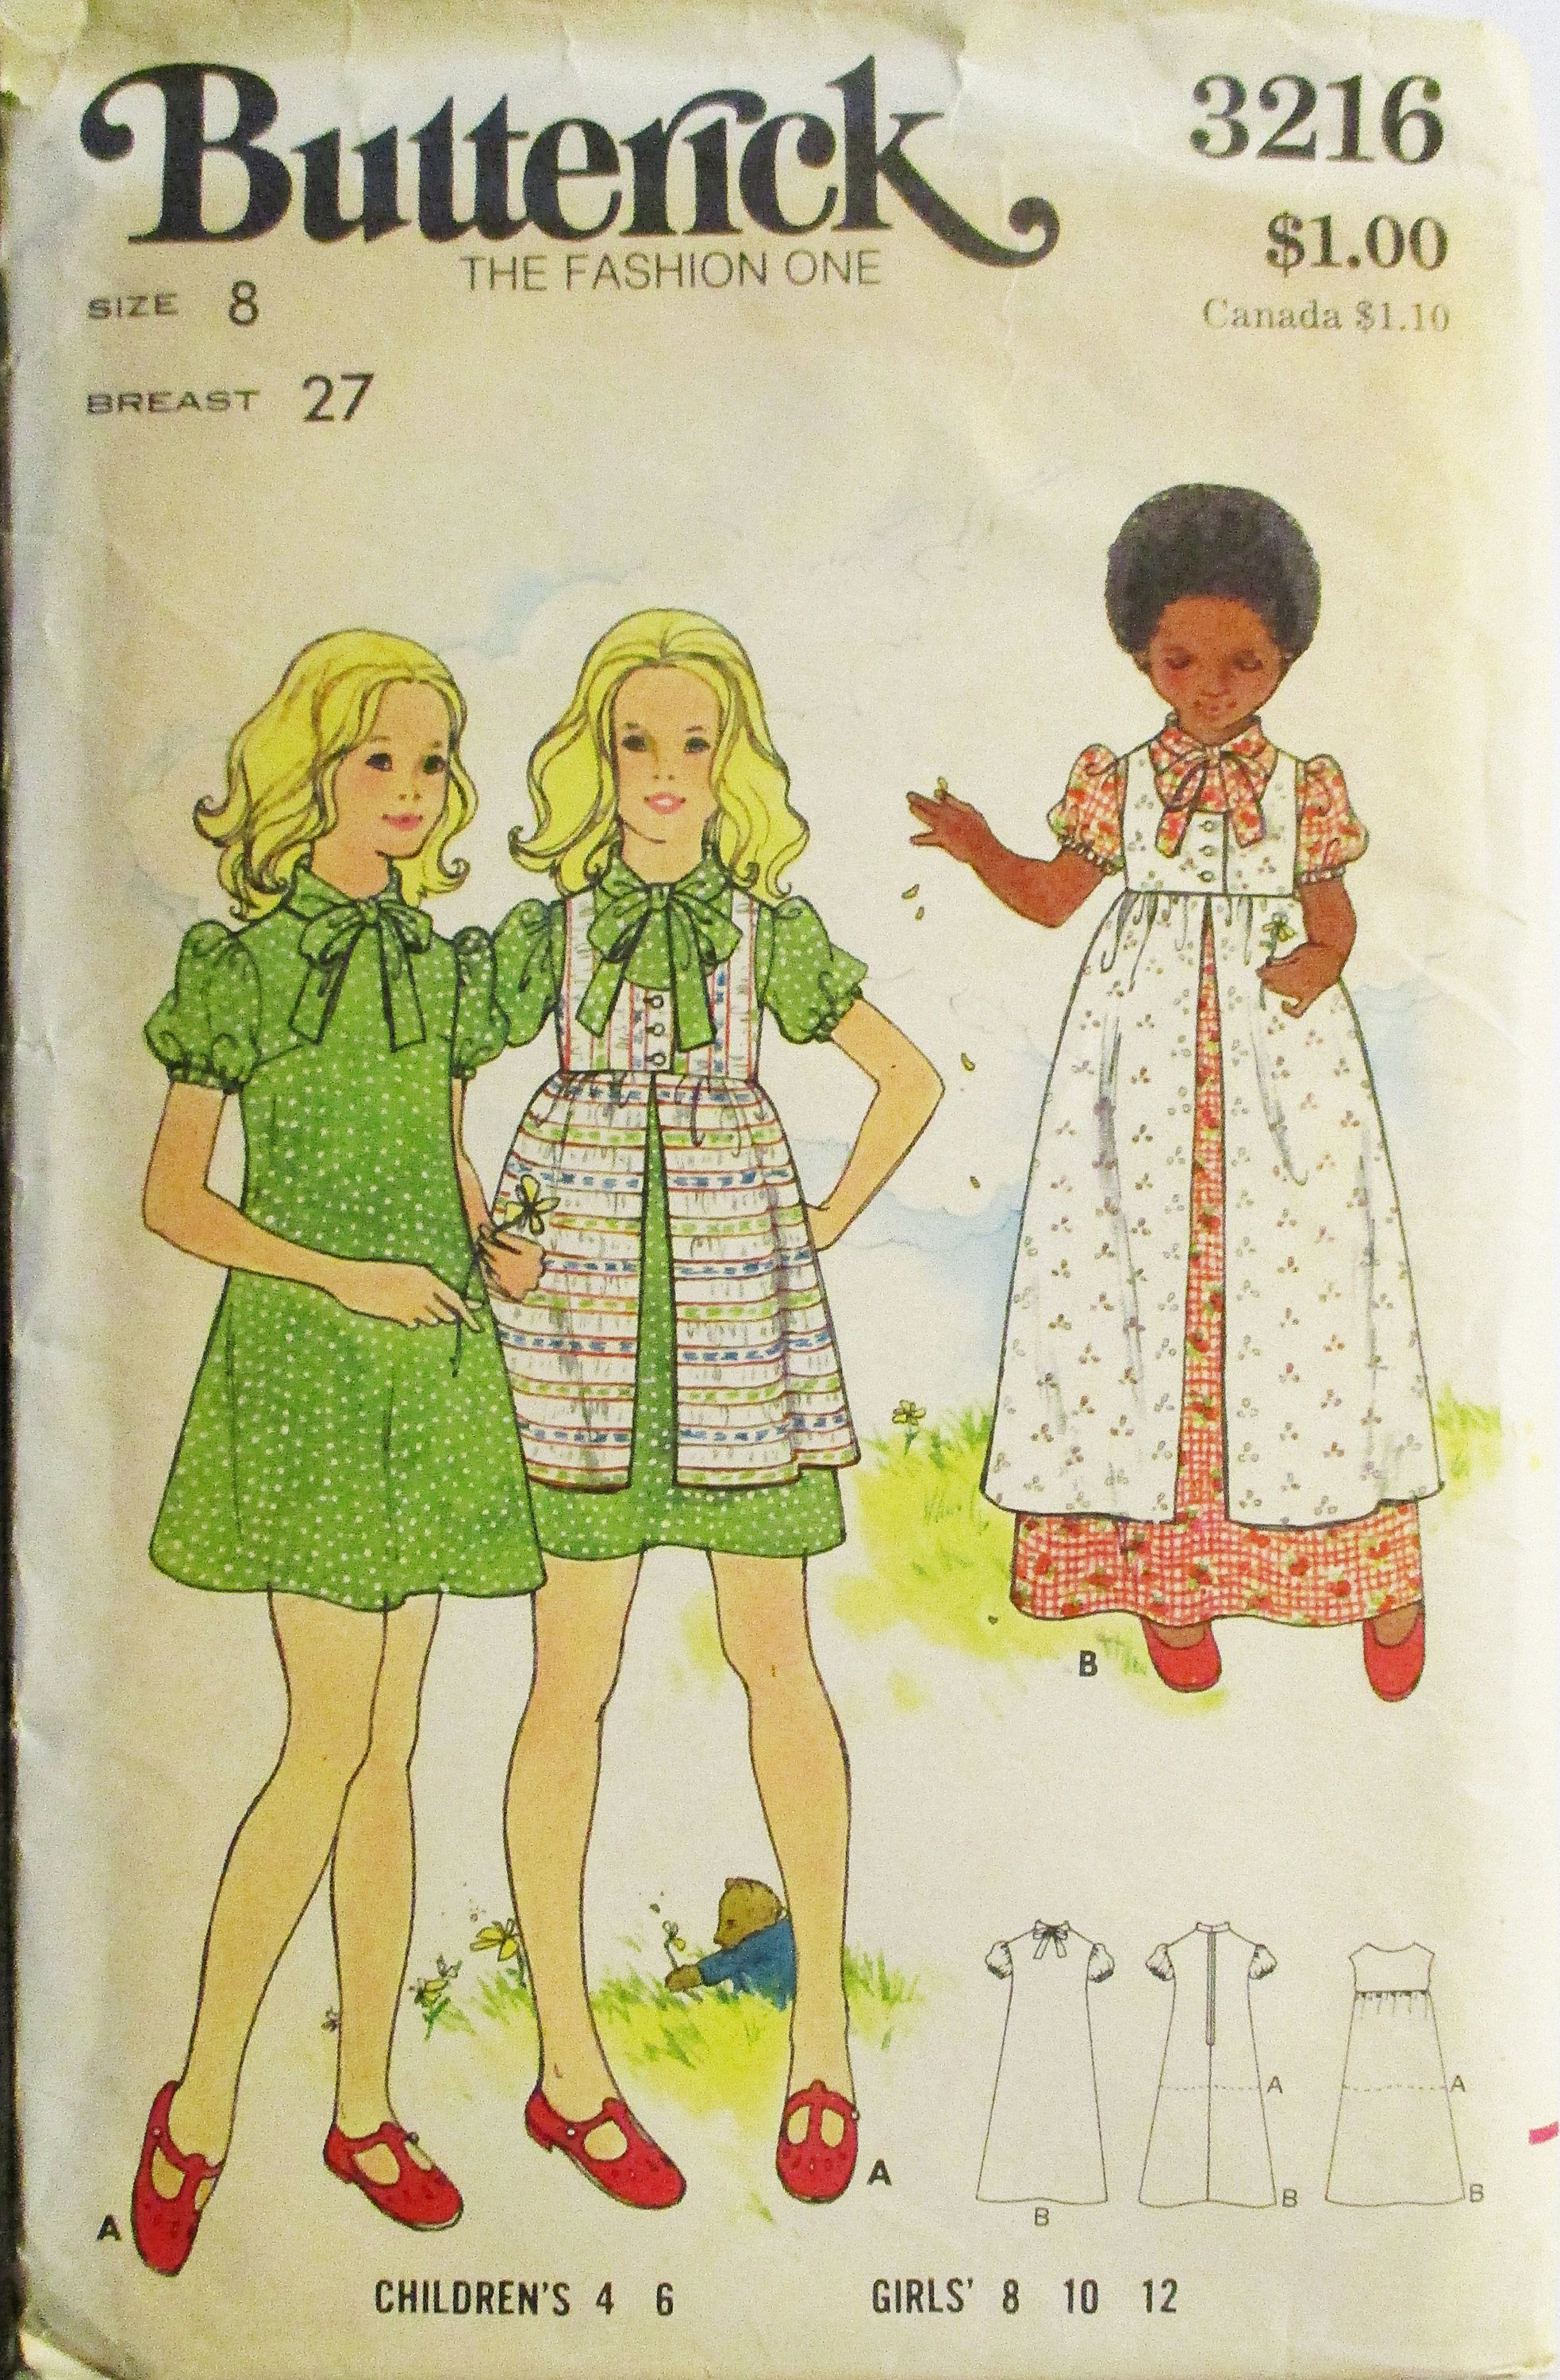 BUTTERICK 6063 VINTAGE GIRLS EMPIRE WAIST SPECIAL OCCASION DRESS PATTERN